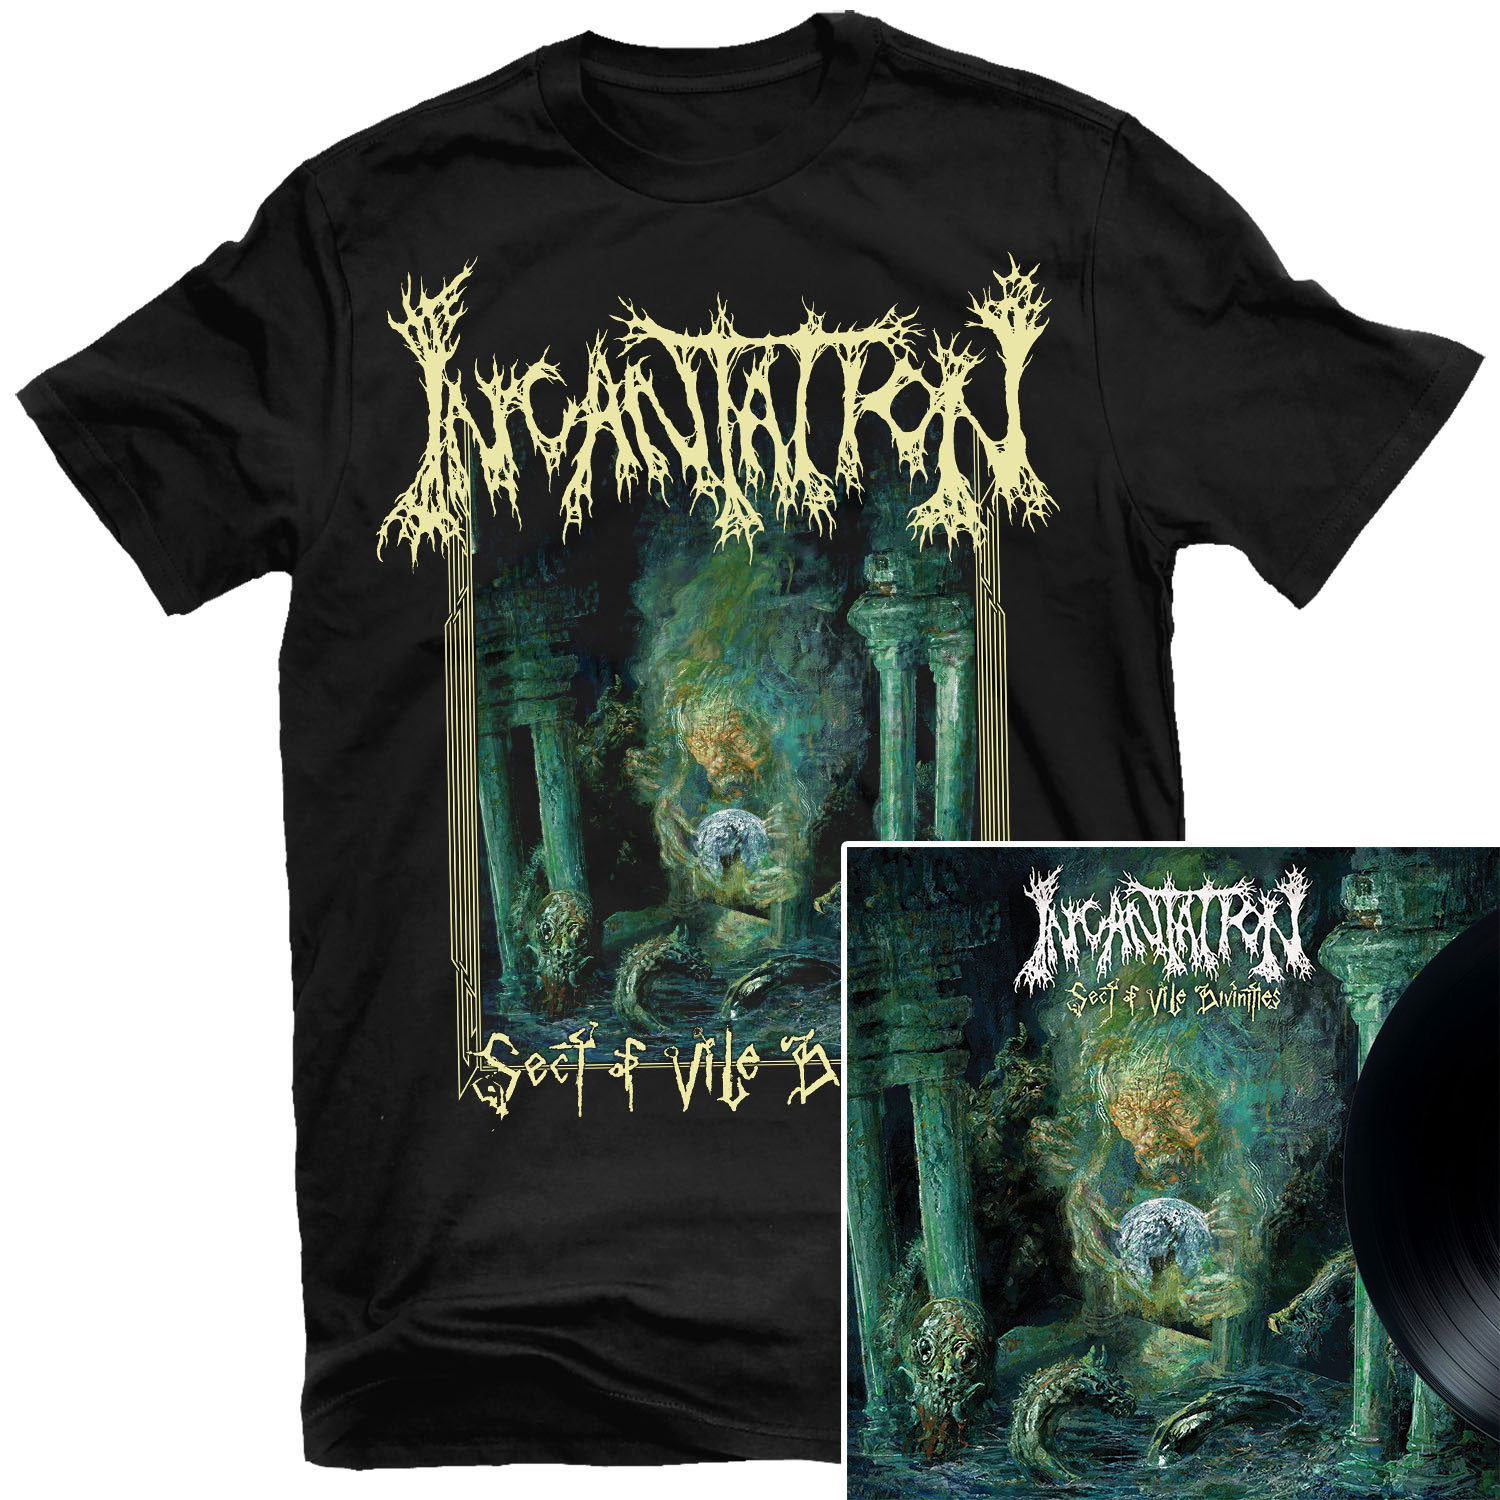 Sect of Vile Divinities T Shirt + LP Bundle